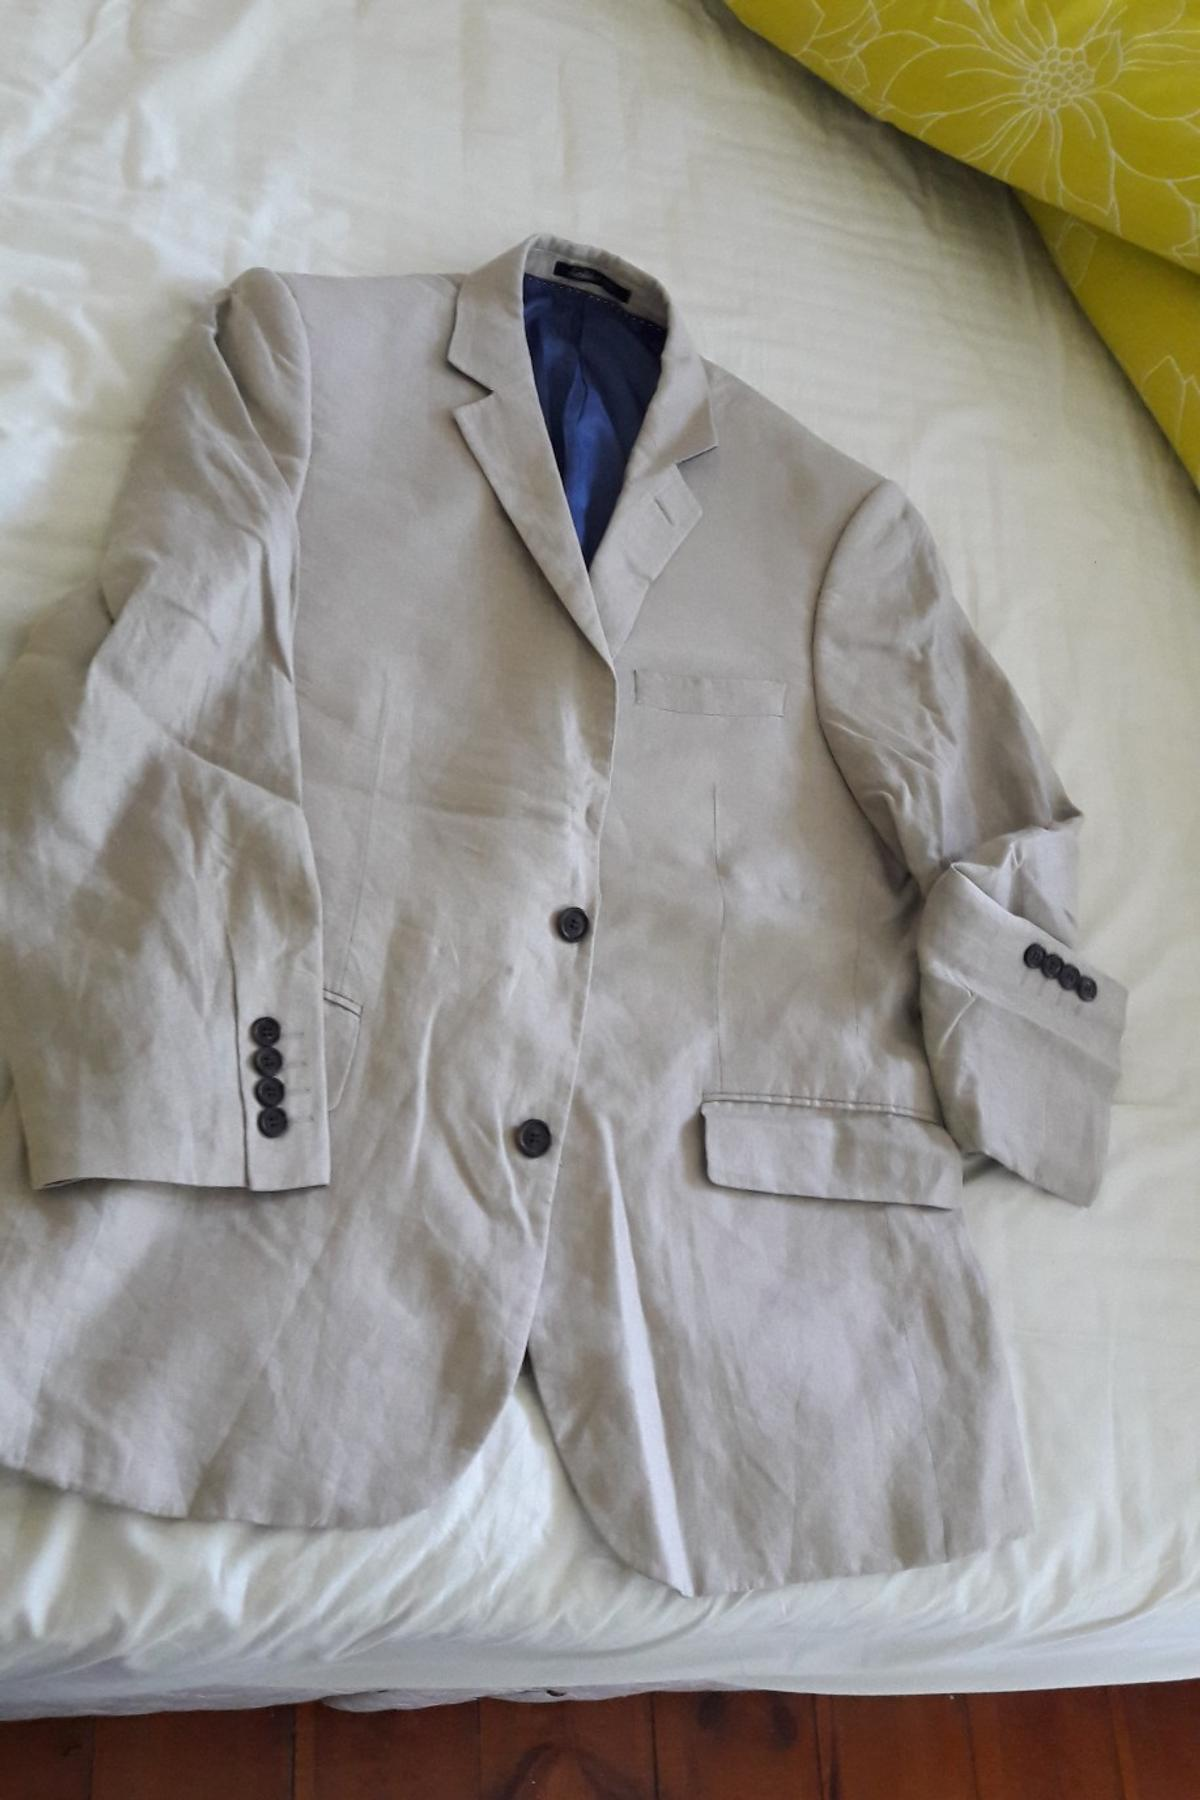 Austin Reed Men S Pure Linen Jacket Size 42 In E4 London Borough Of Waltham Forest For 20 00 For Sale Shpock